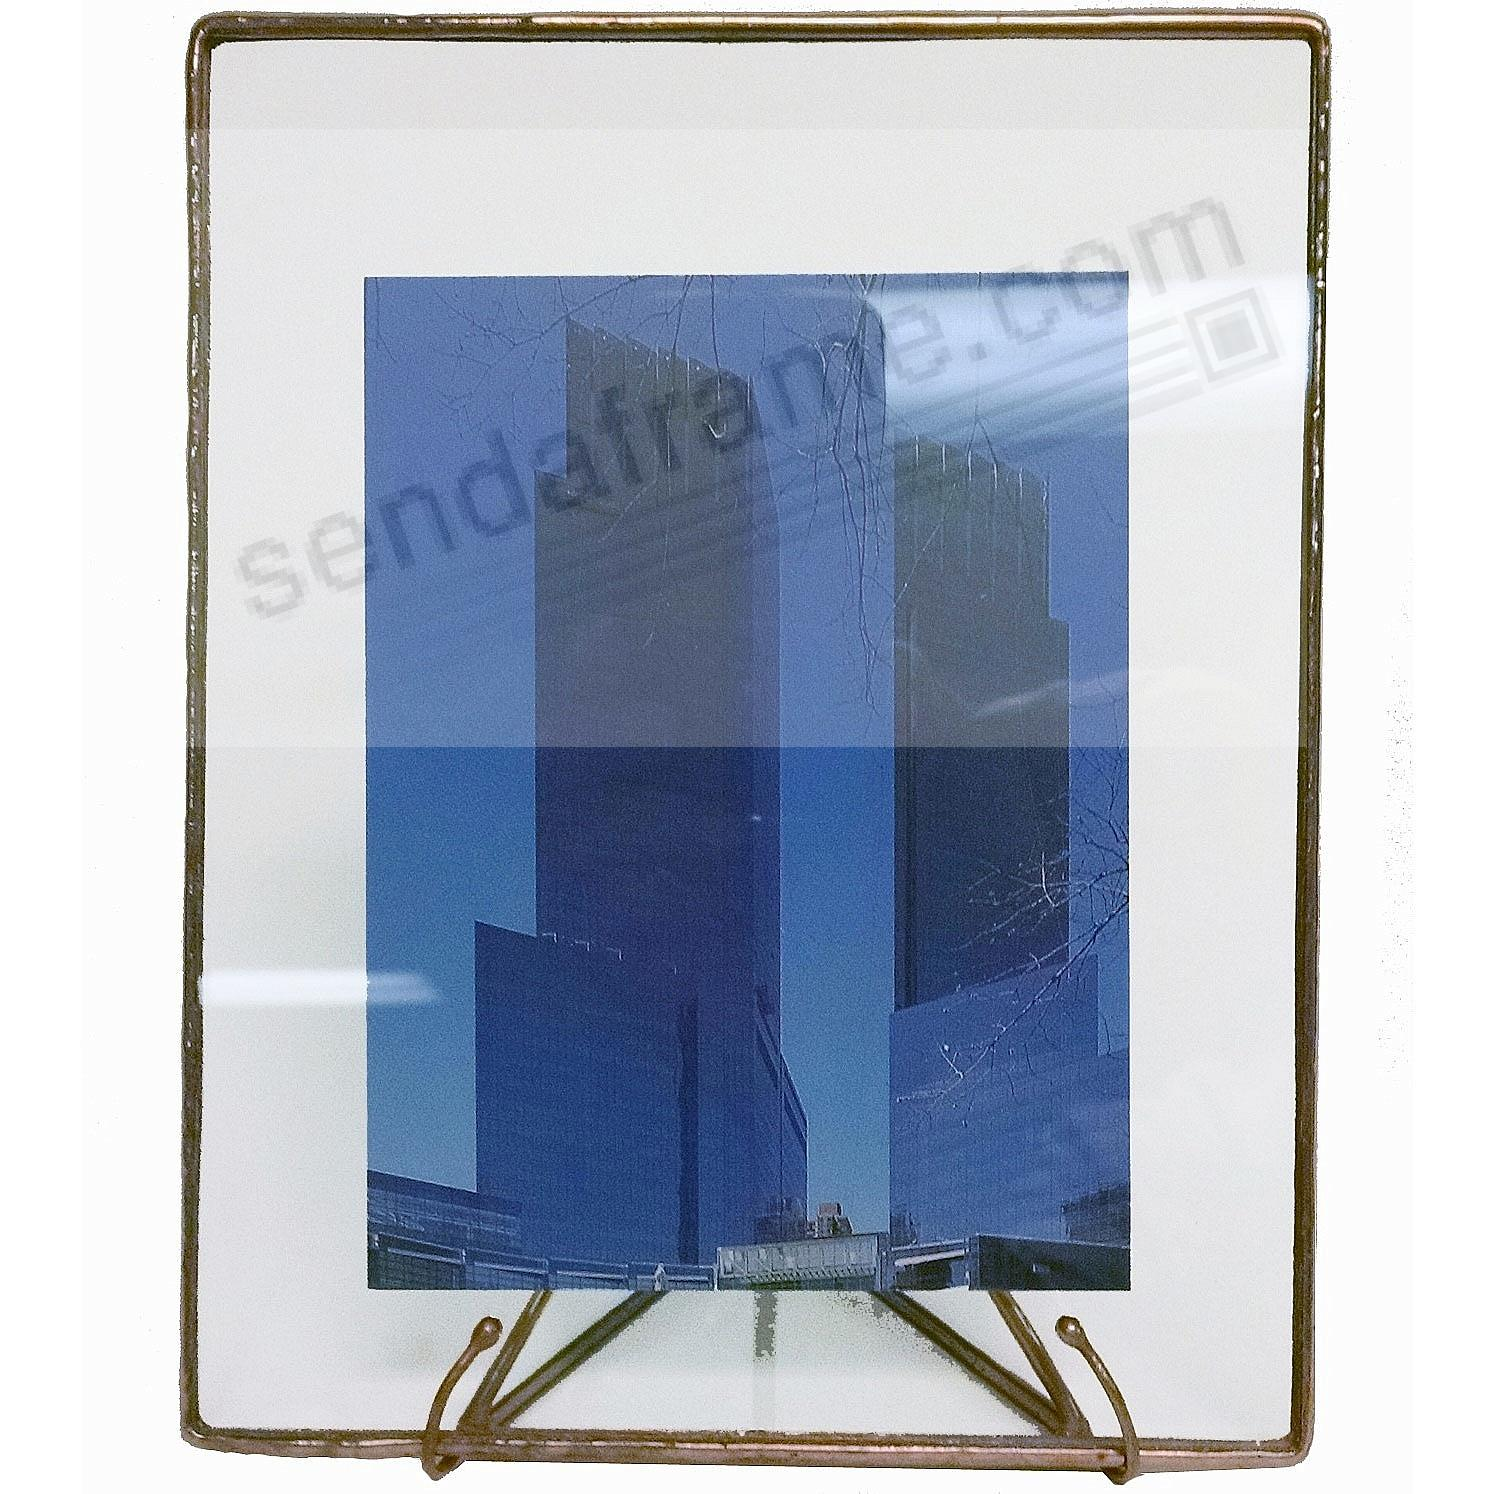 COPPER + CLEAR GLASS Float Frame 9x11/8x10 by Bedford Downing®